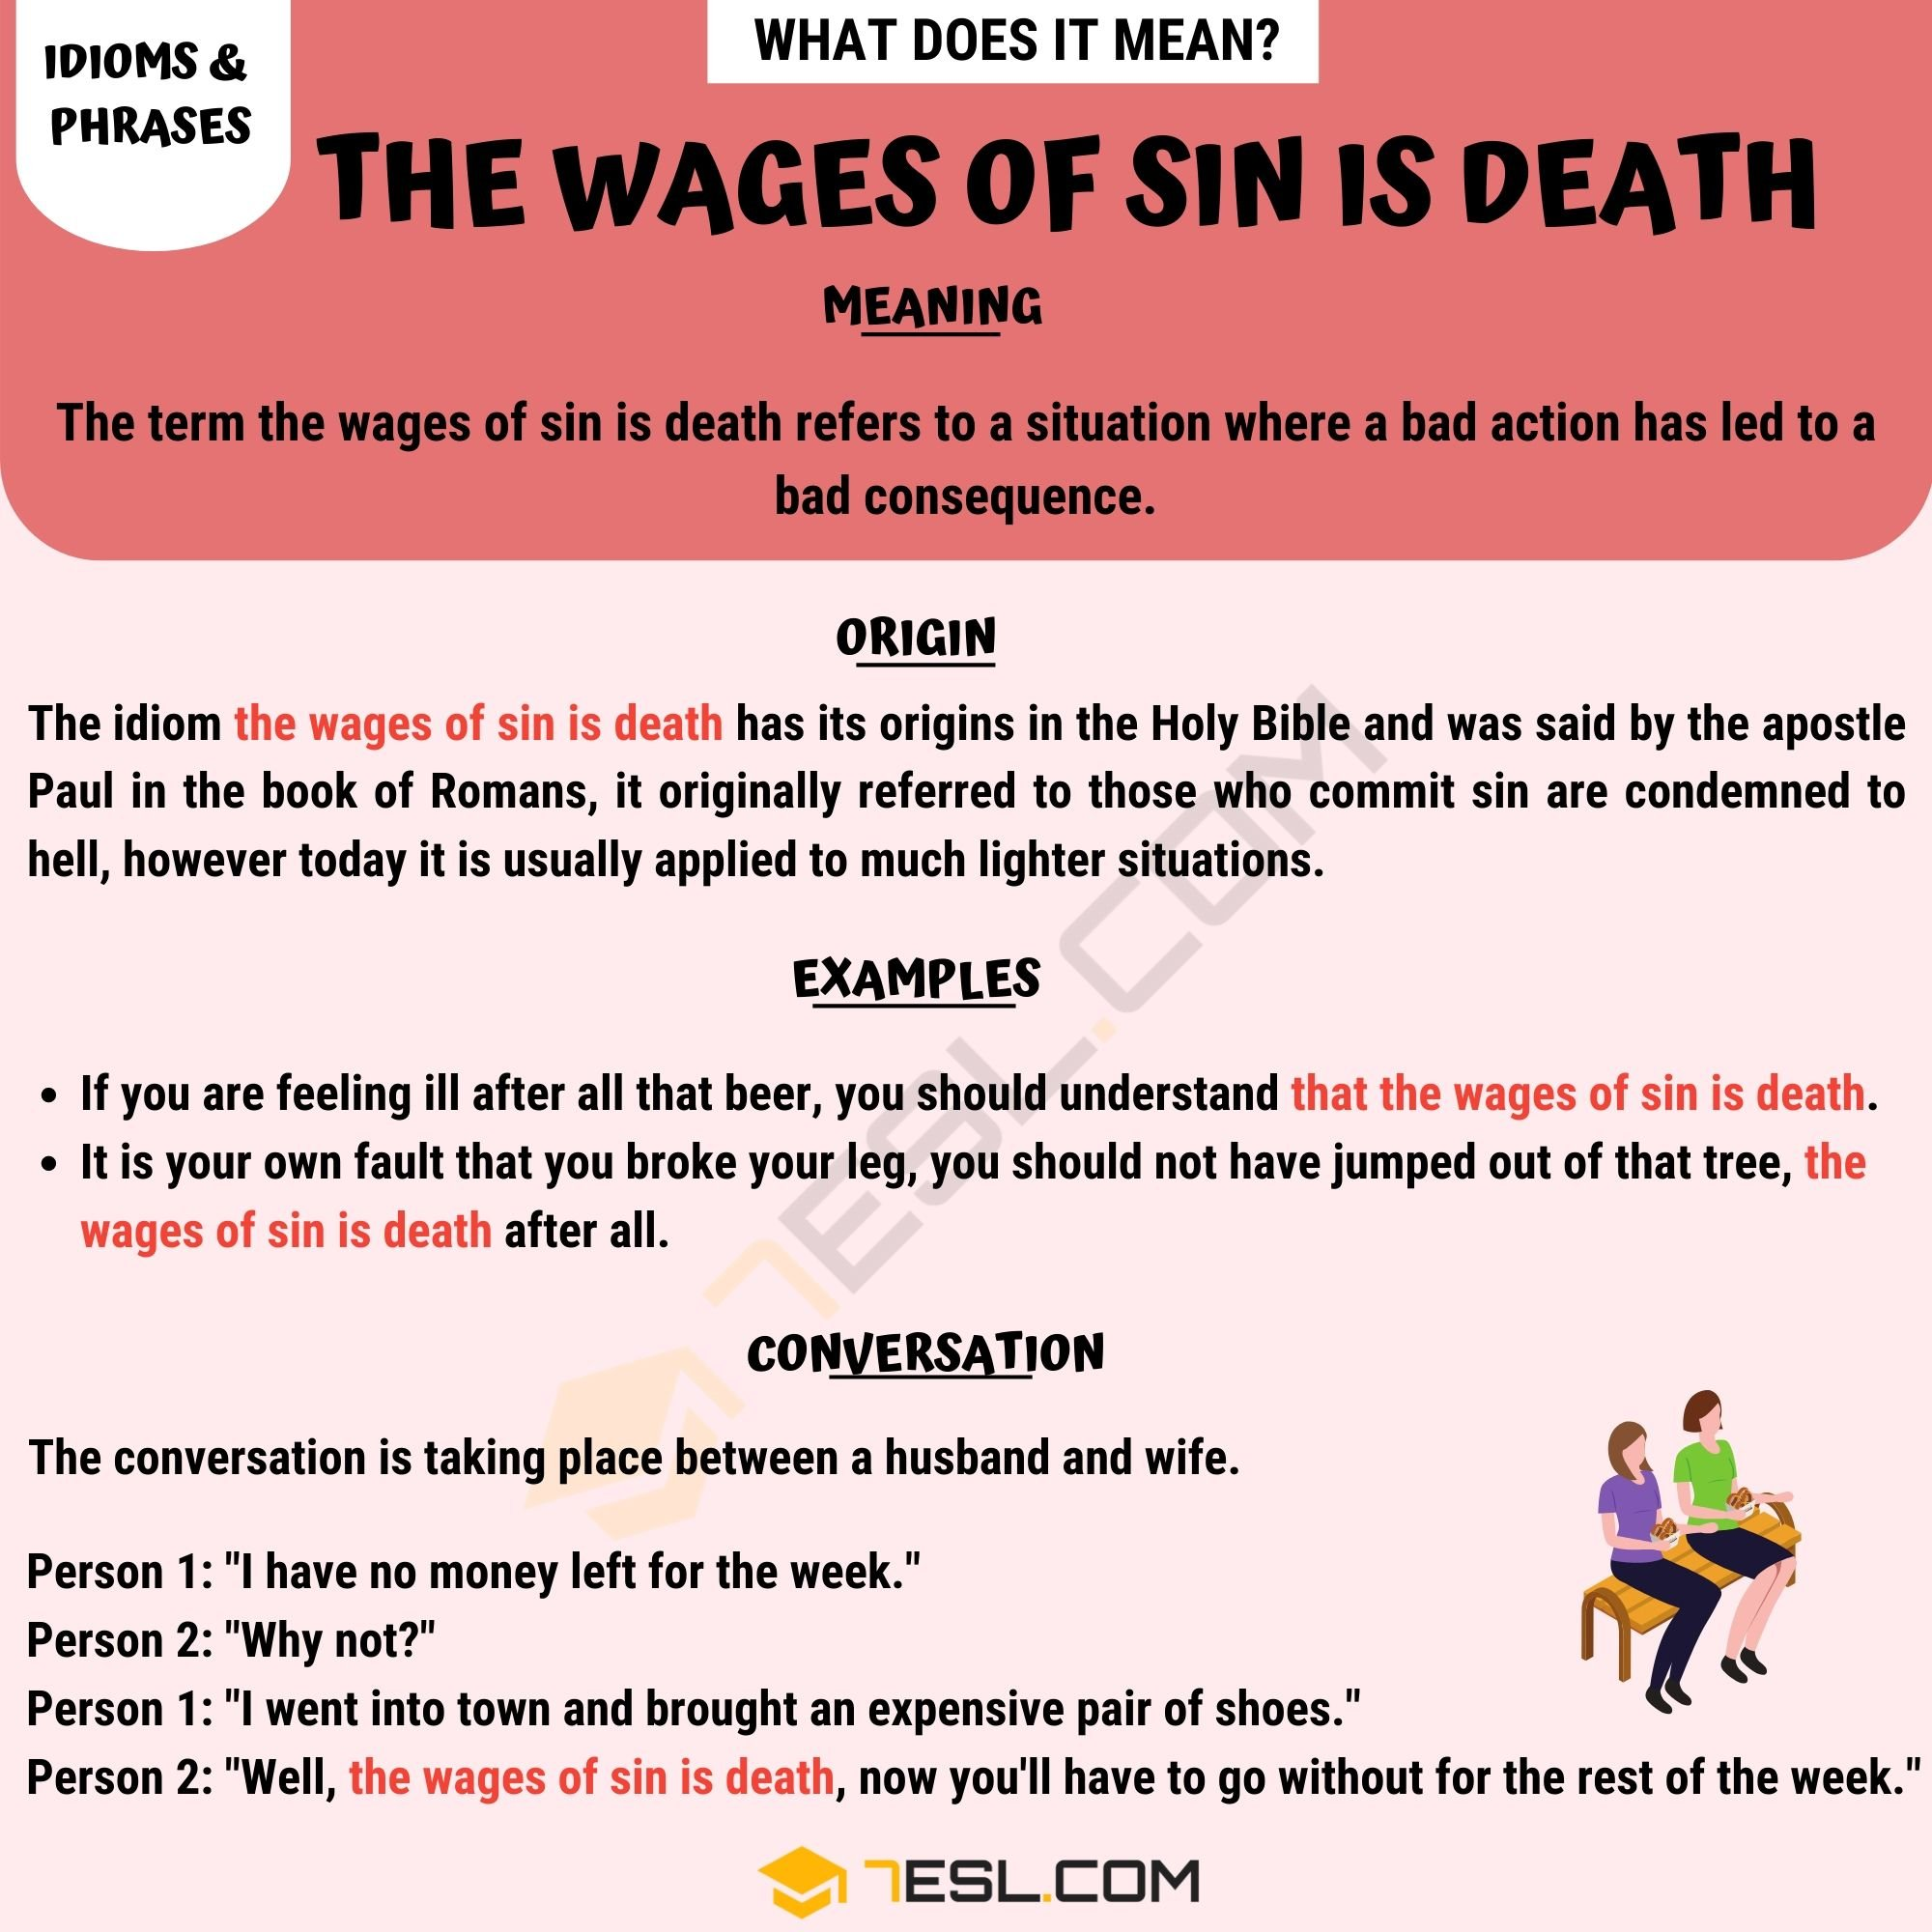 The Wages of Sin Is Death